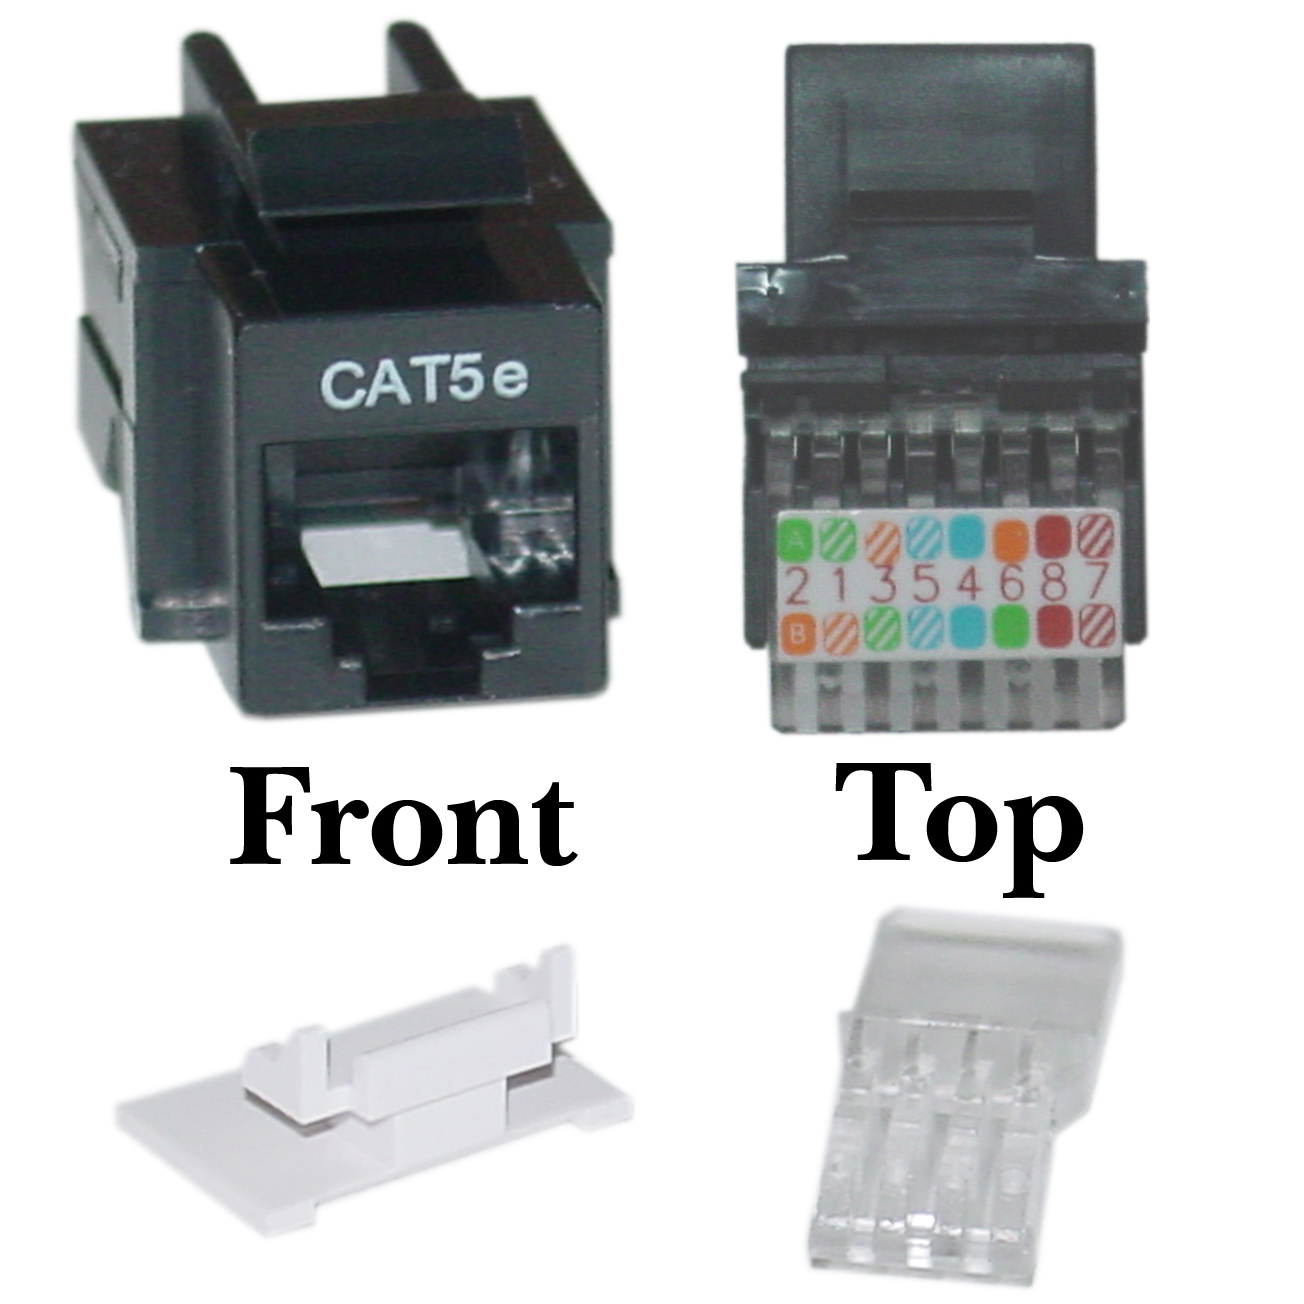 Cat5e Numbering Bnb Coin How Does It Work Up Pinout Also Home Wiring Diagram On Network Cat 5e